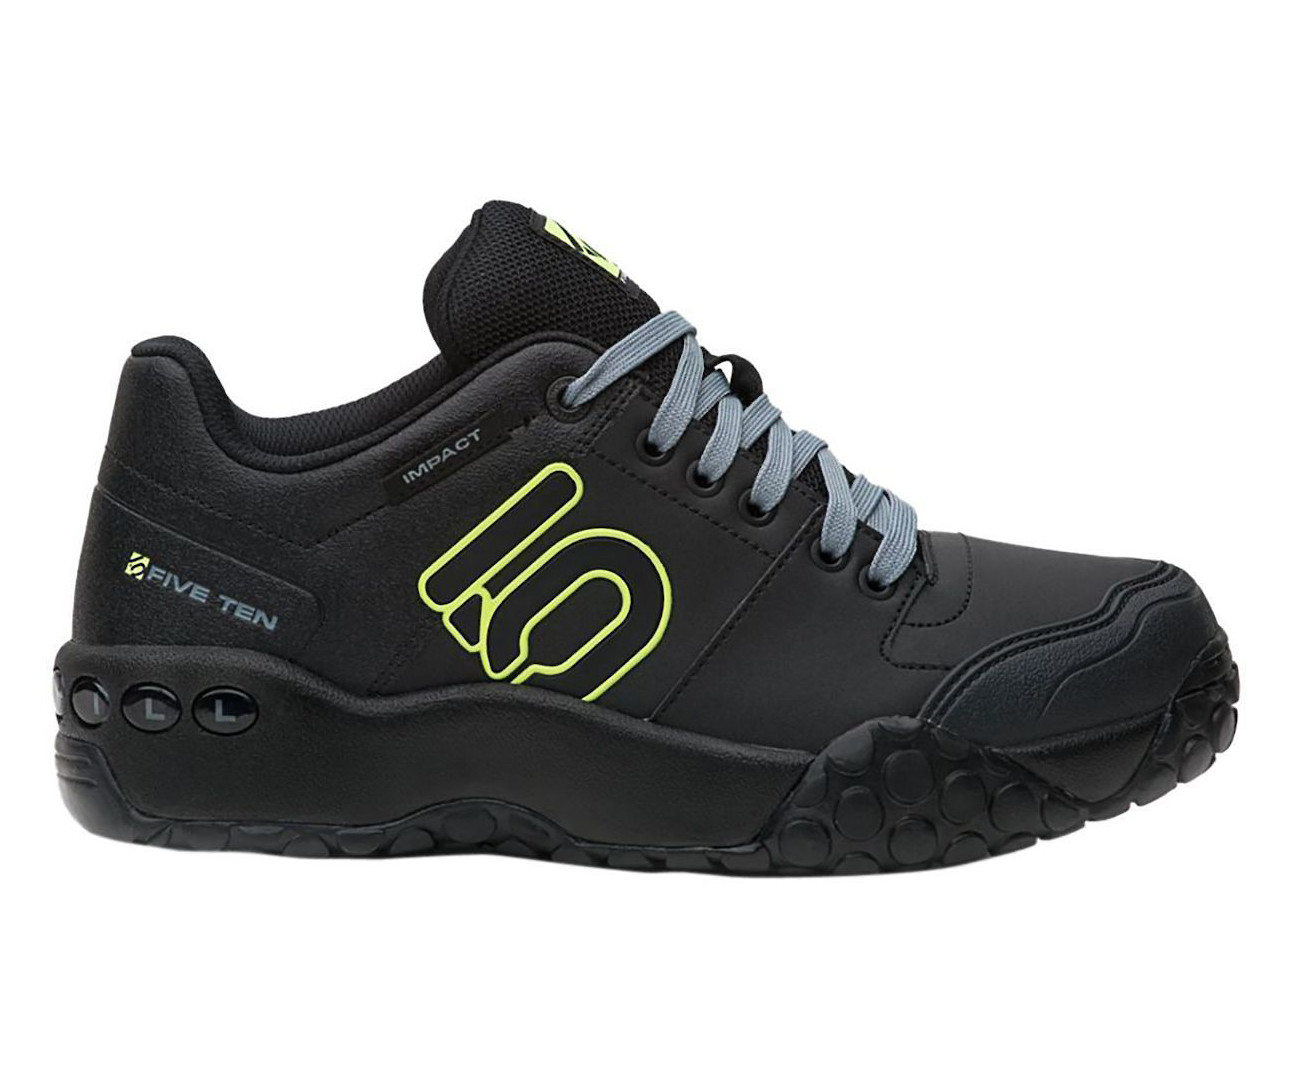 Five Ten Impact Sam Hill Shoe